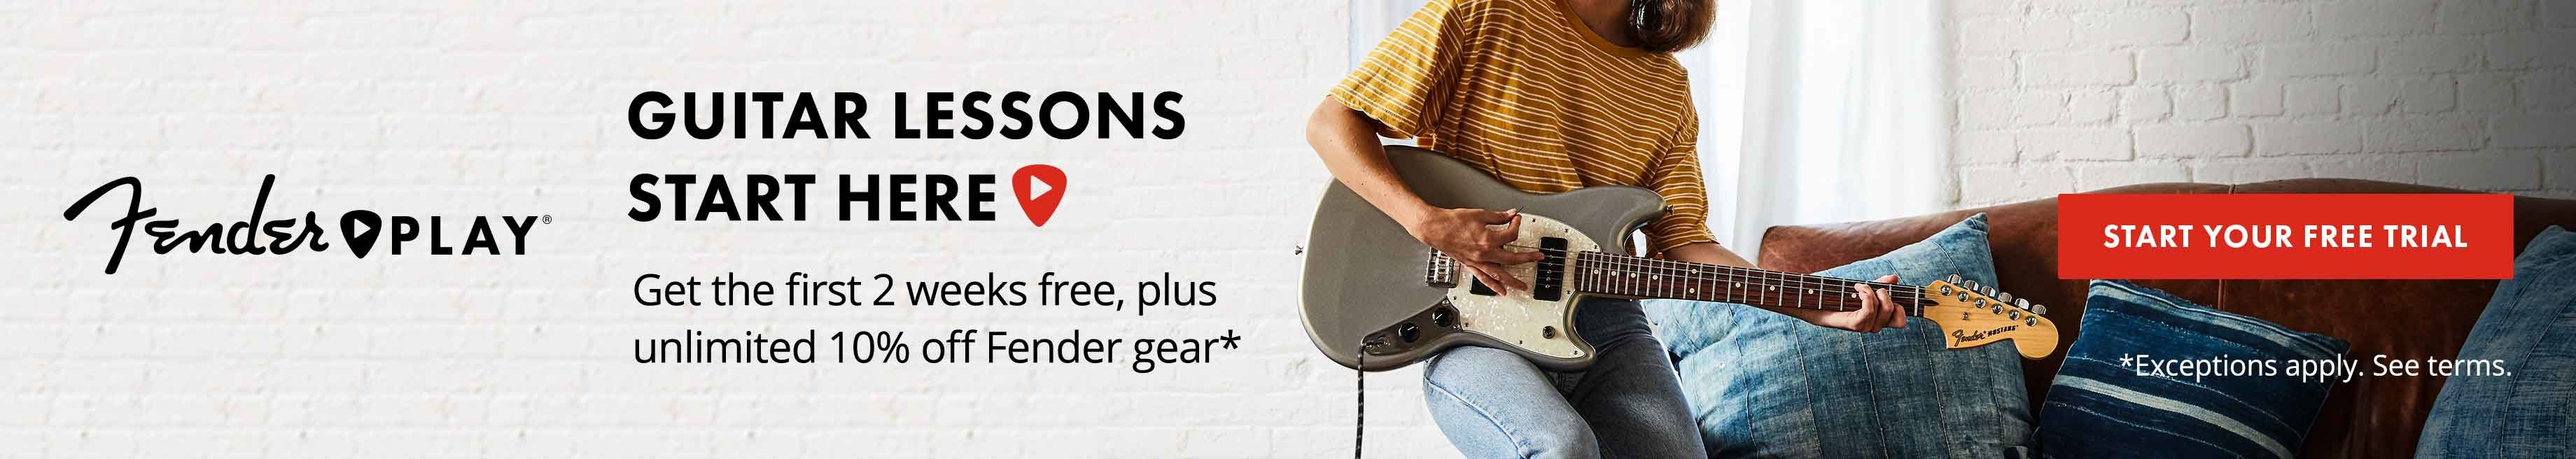 Step By Guide To Getting Started Playing Guitar 10 Beginner Faqs Electric Parts Diagram String Finger Numbering And Etc Looking For More Knowledge Check Out Our Ultimate Your New If Youre Ready Learn Sign Up A Free Trial Fender